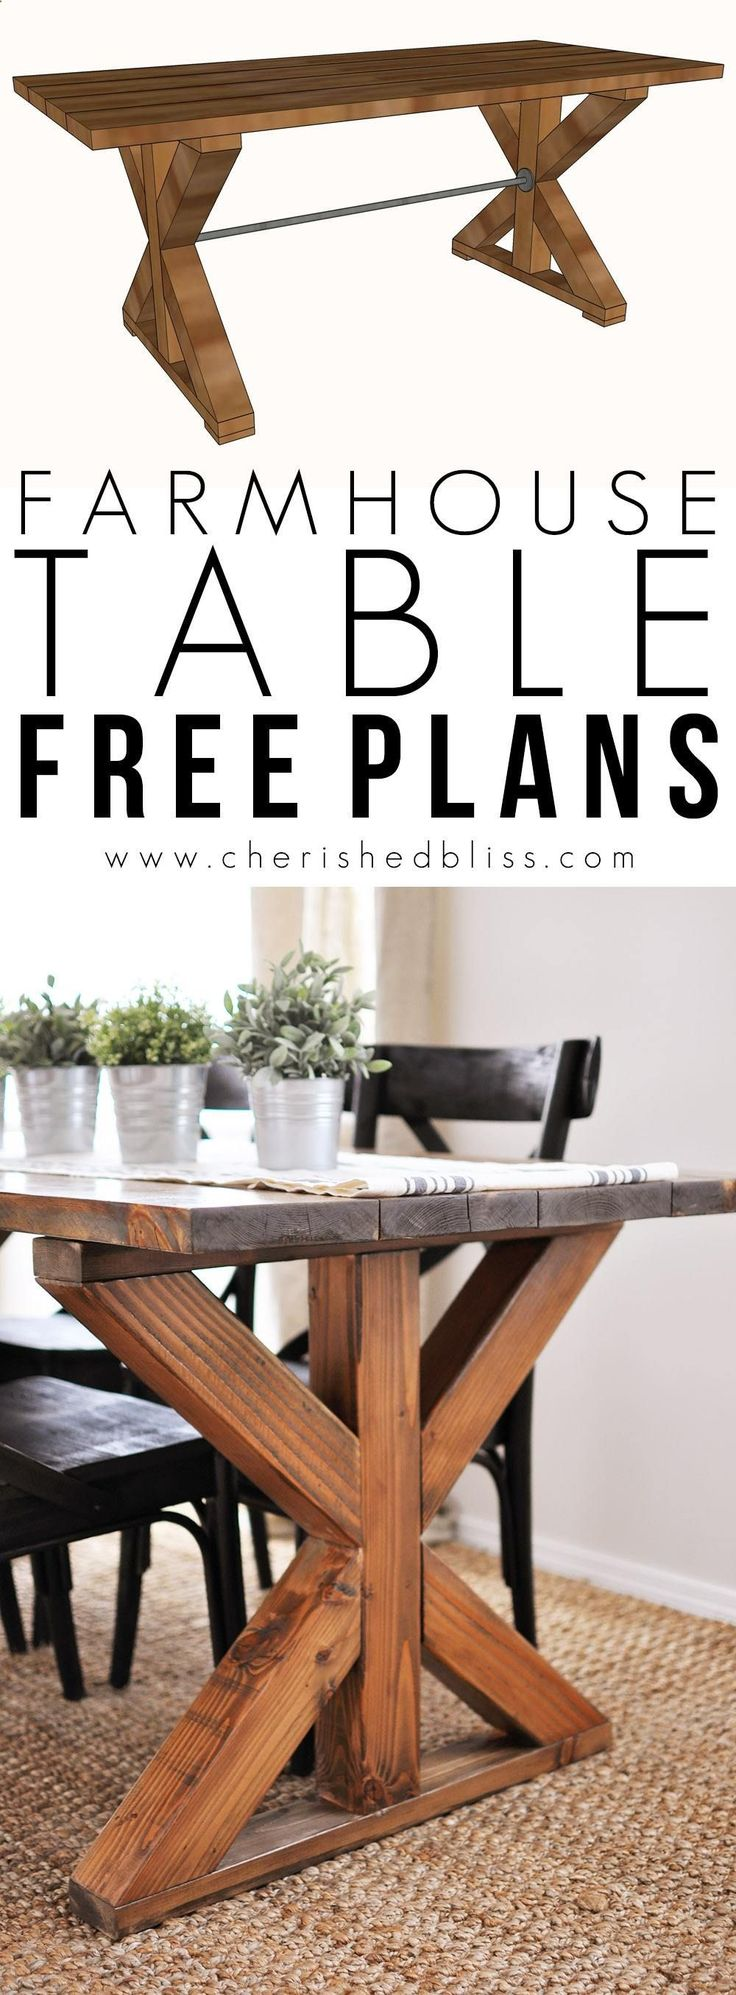 Projects Idea Of Steampunk Dining Table. Teds Wood Working X Farmhouse Table  This easy to build is the perfect addition any dining or breakfast room 31 best DIY Furniture Chairs images on Pinterest